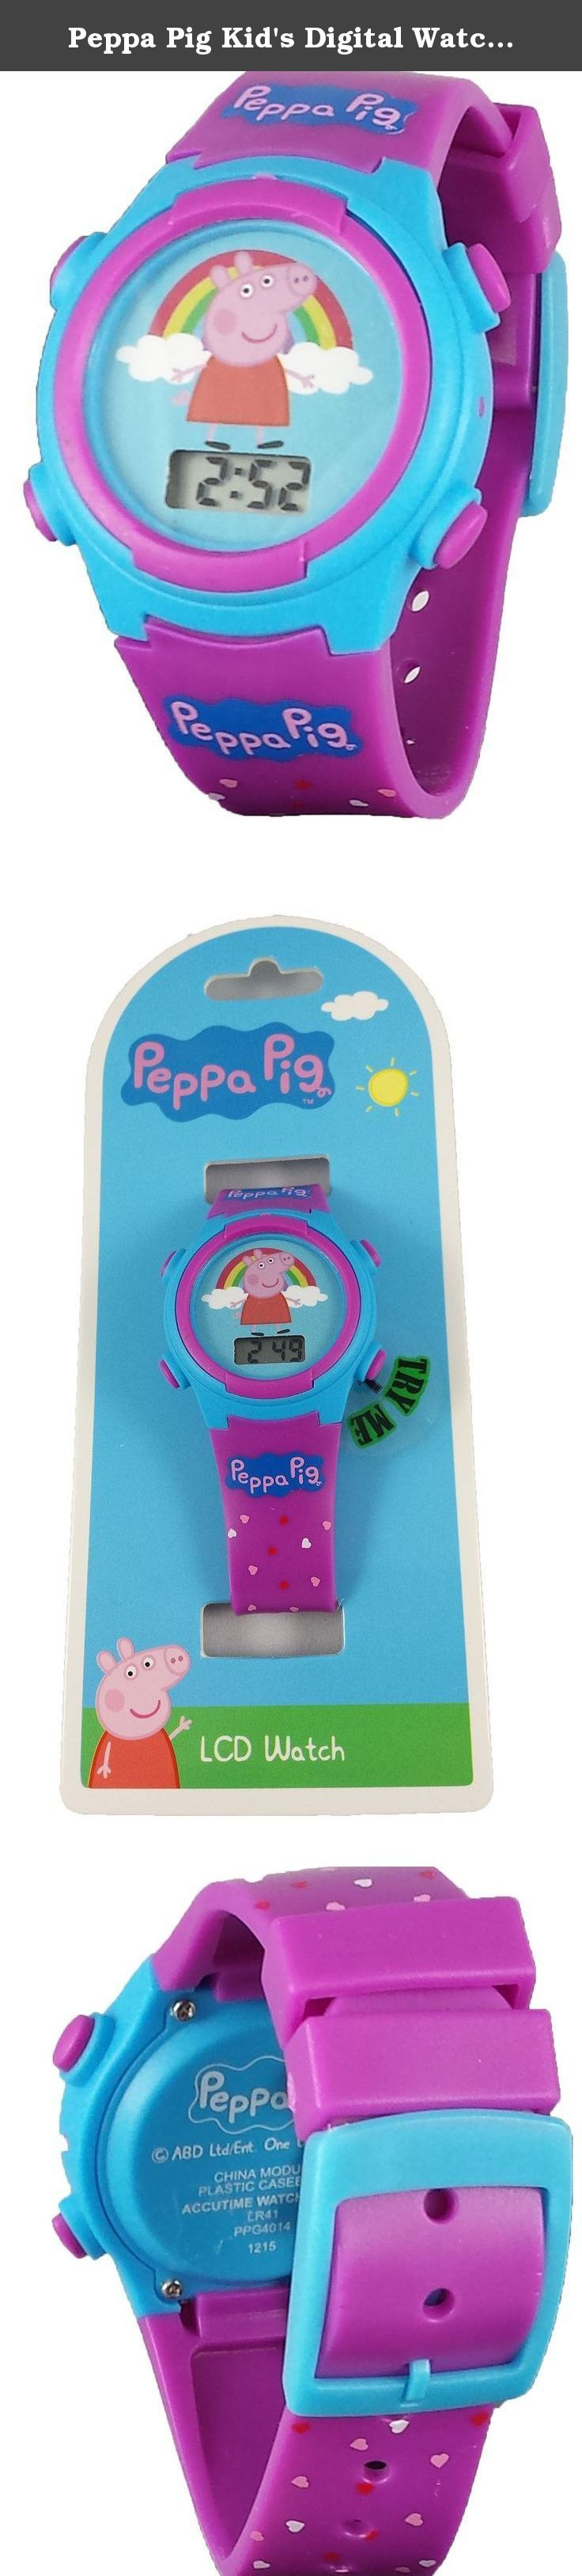 "Peppa Pig Kid's Digital Watch with Light Up Feature. This is a cute kids watch that has Peppa pig on the dial with a rainbow.The watch also lights up in red,green, and yellow across the entire face for 10 seconds with the push of the corner button. The band is adjustable with a buckle clasp and has hearts throughout the whole thing in addition to having the words""Peppa Pig"" above and below the face."